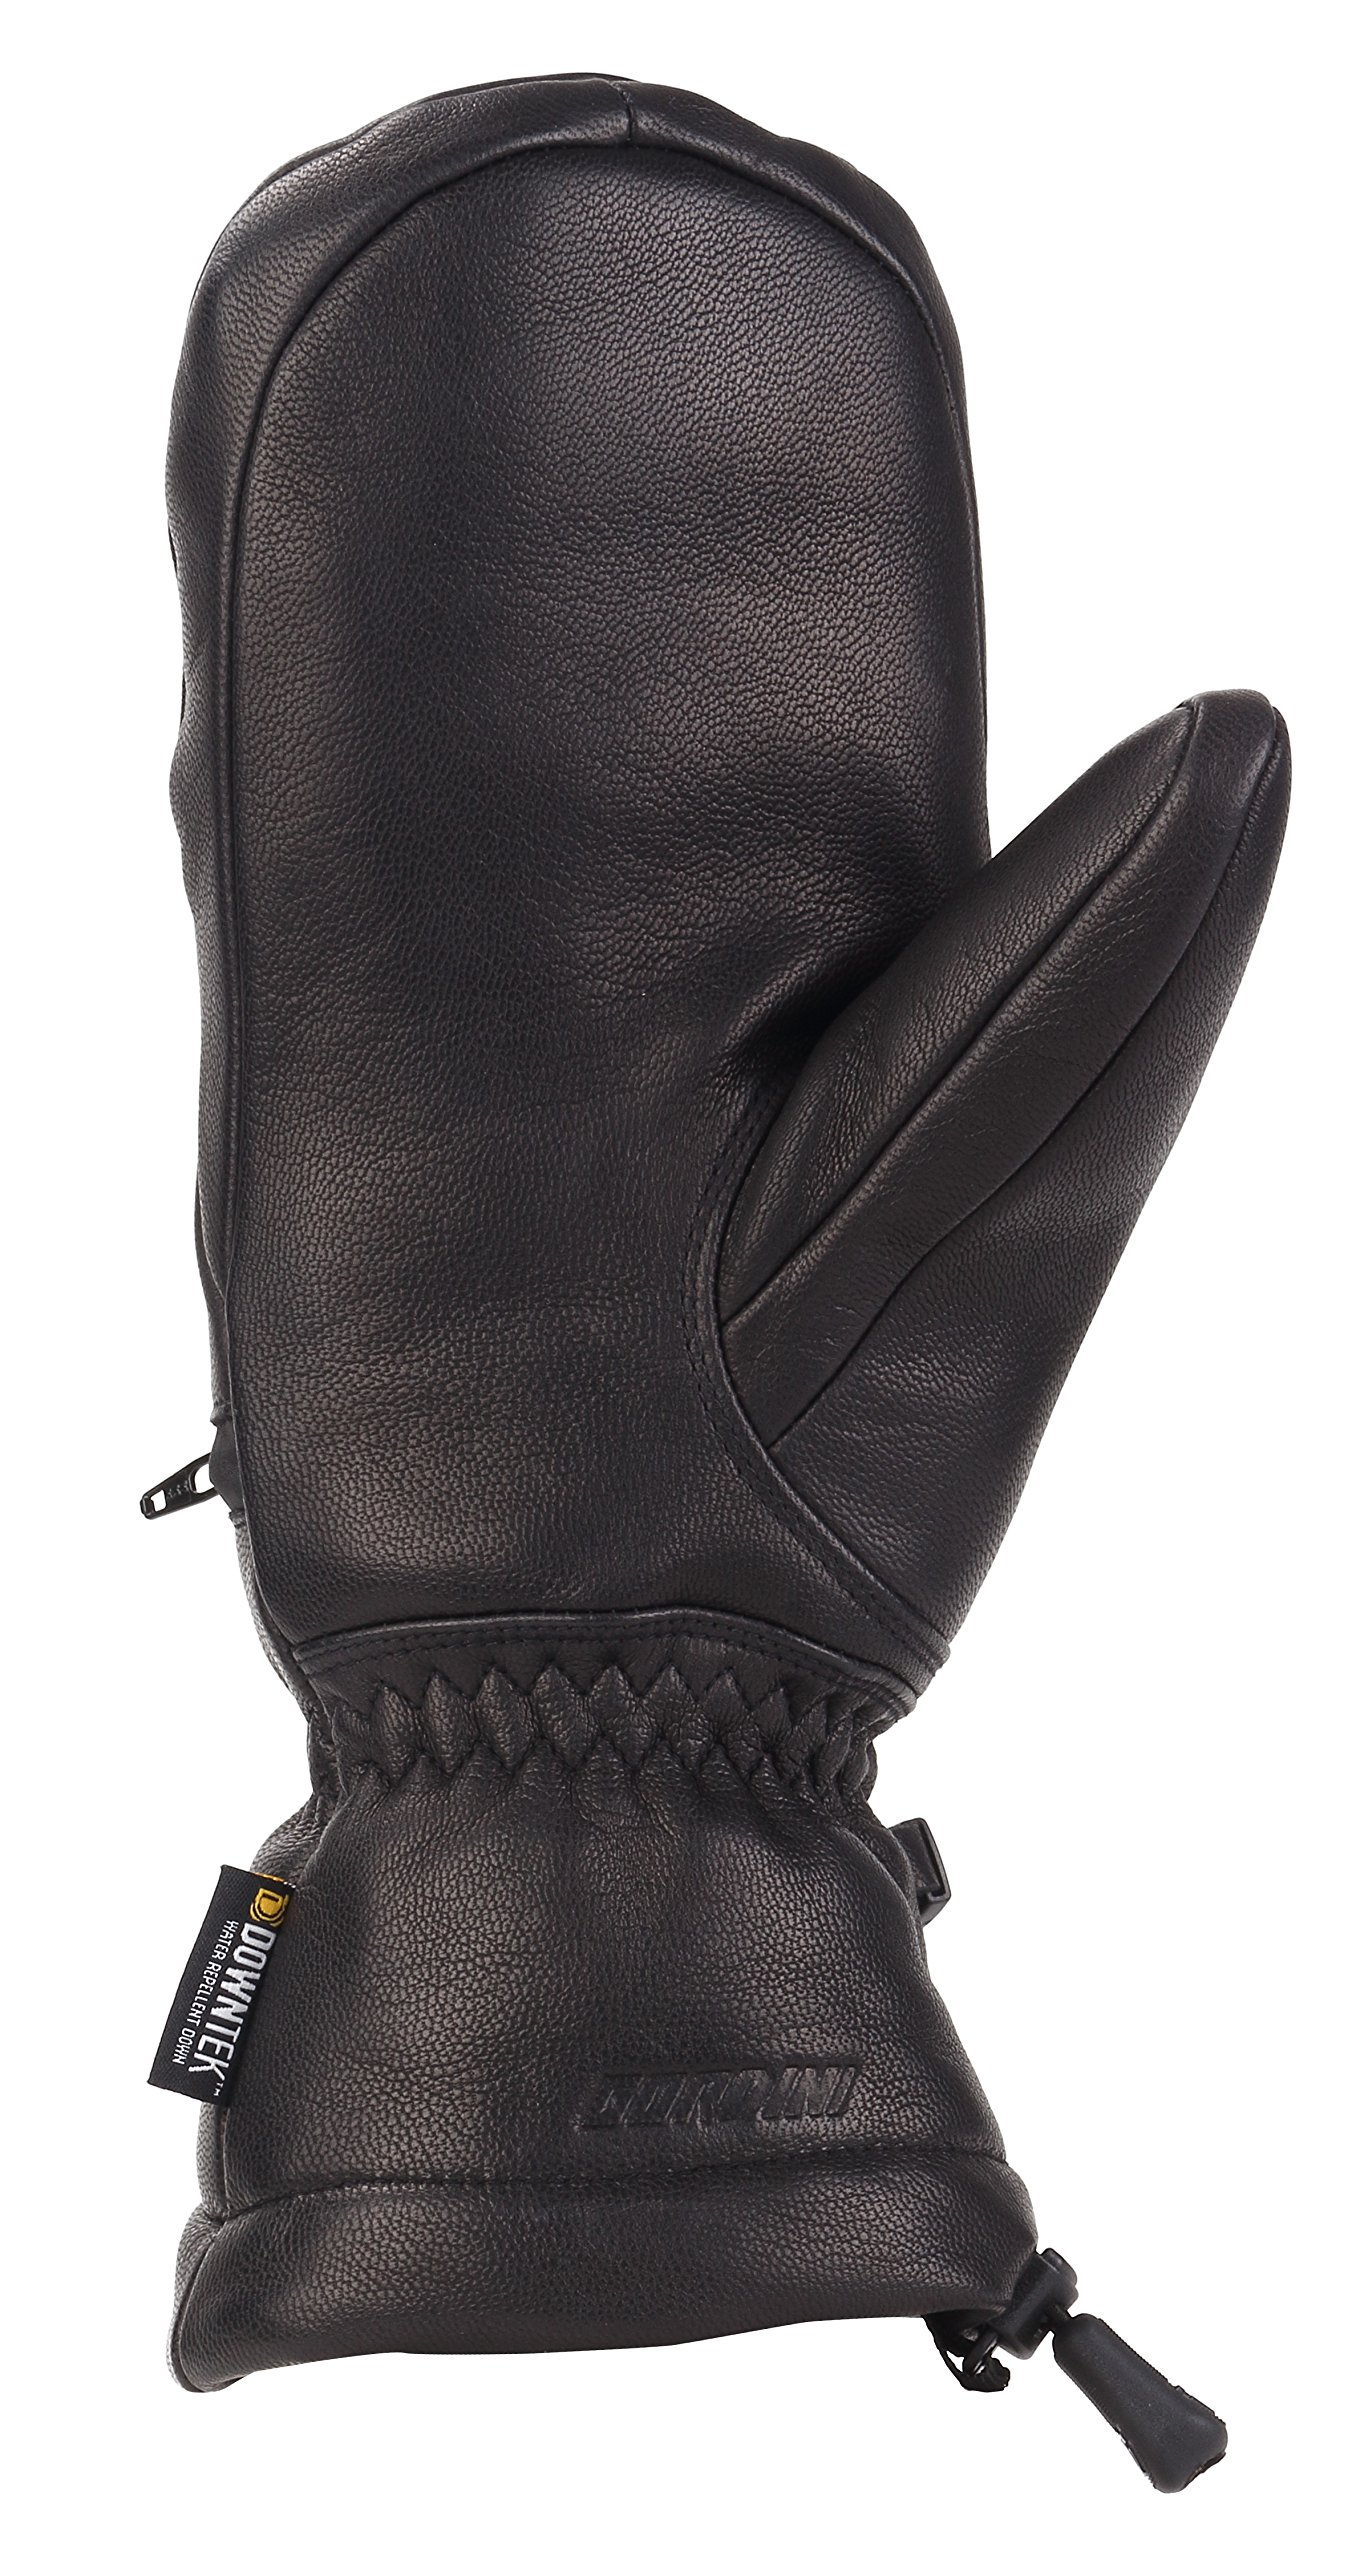 Gordini Women's Women's Leather Goose Iv Insulated Mittens, Black, Large by Gordini (Image #2)